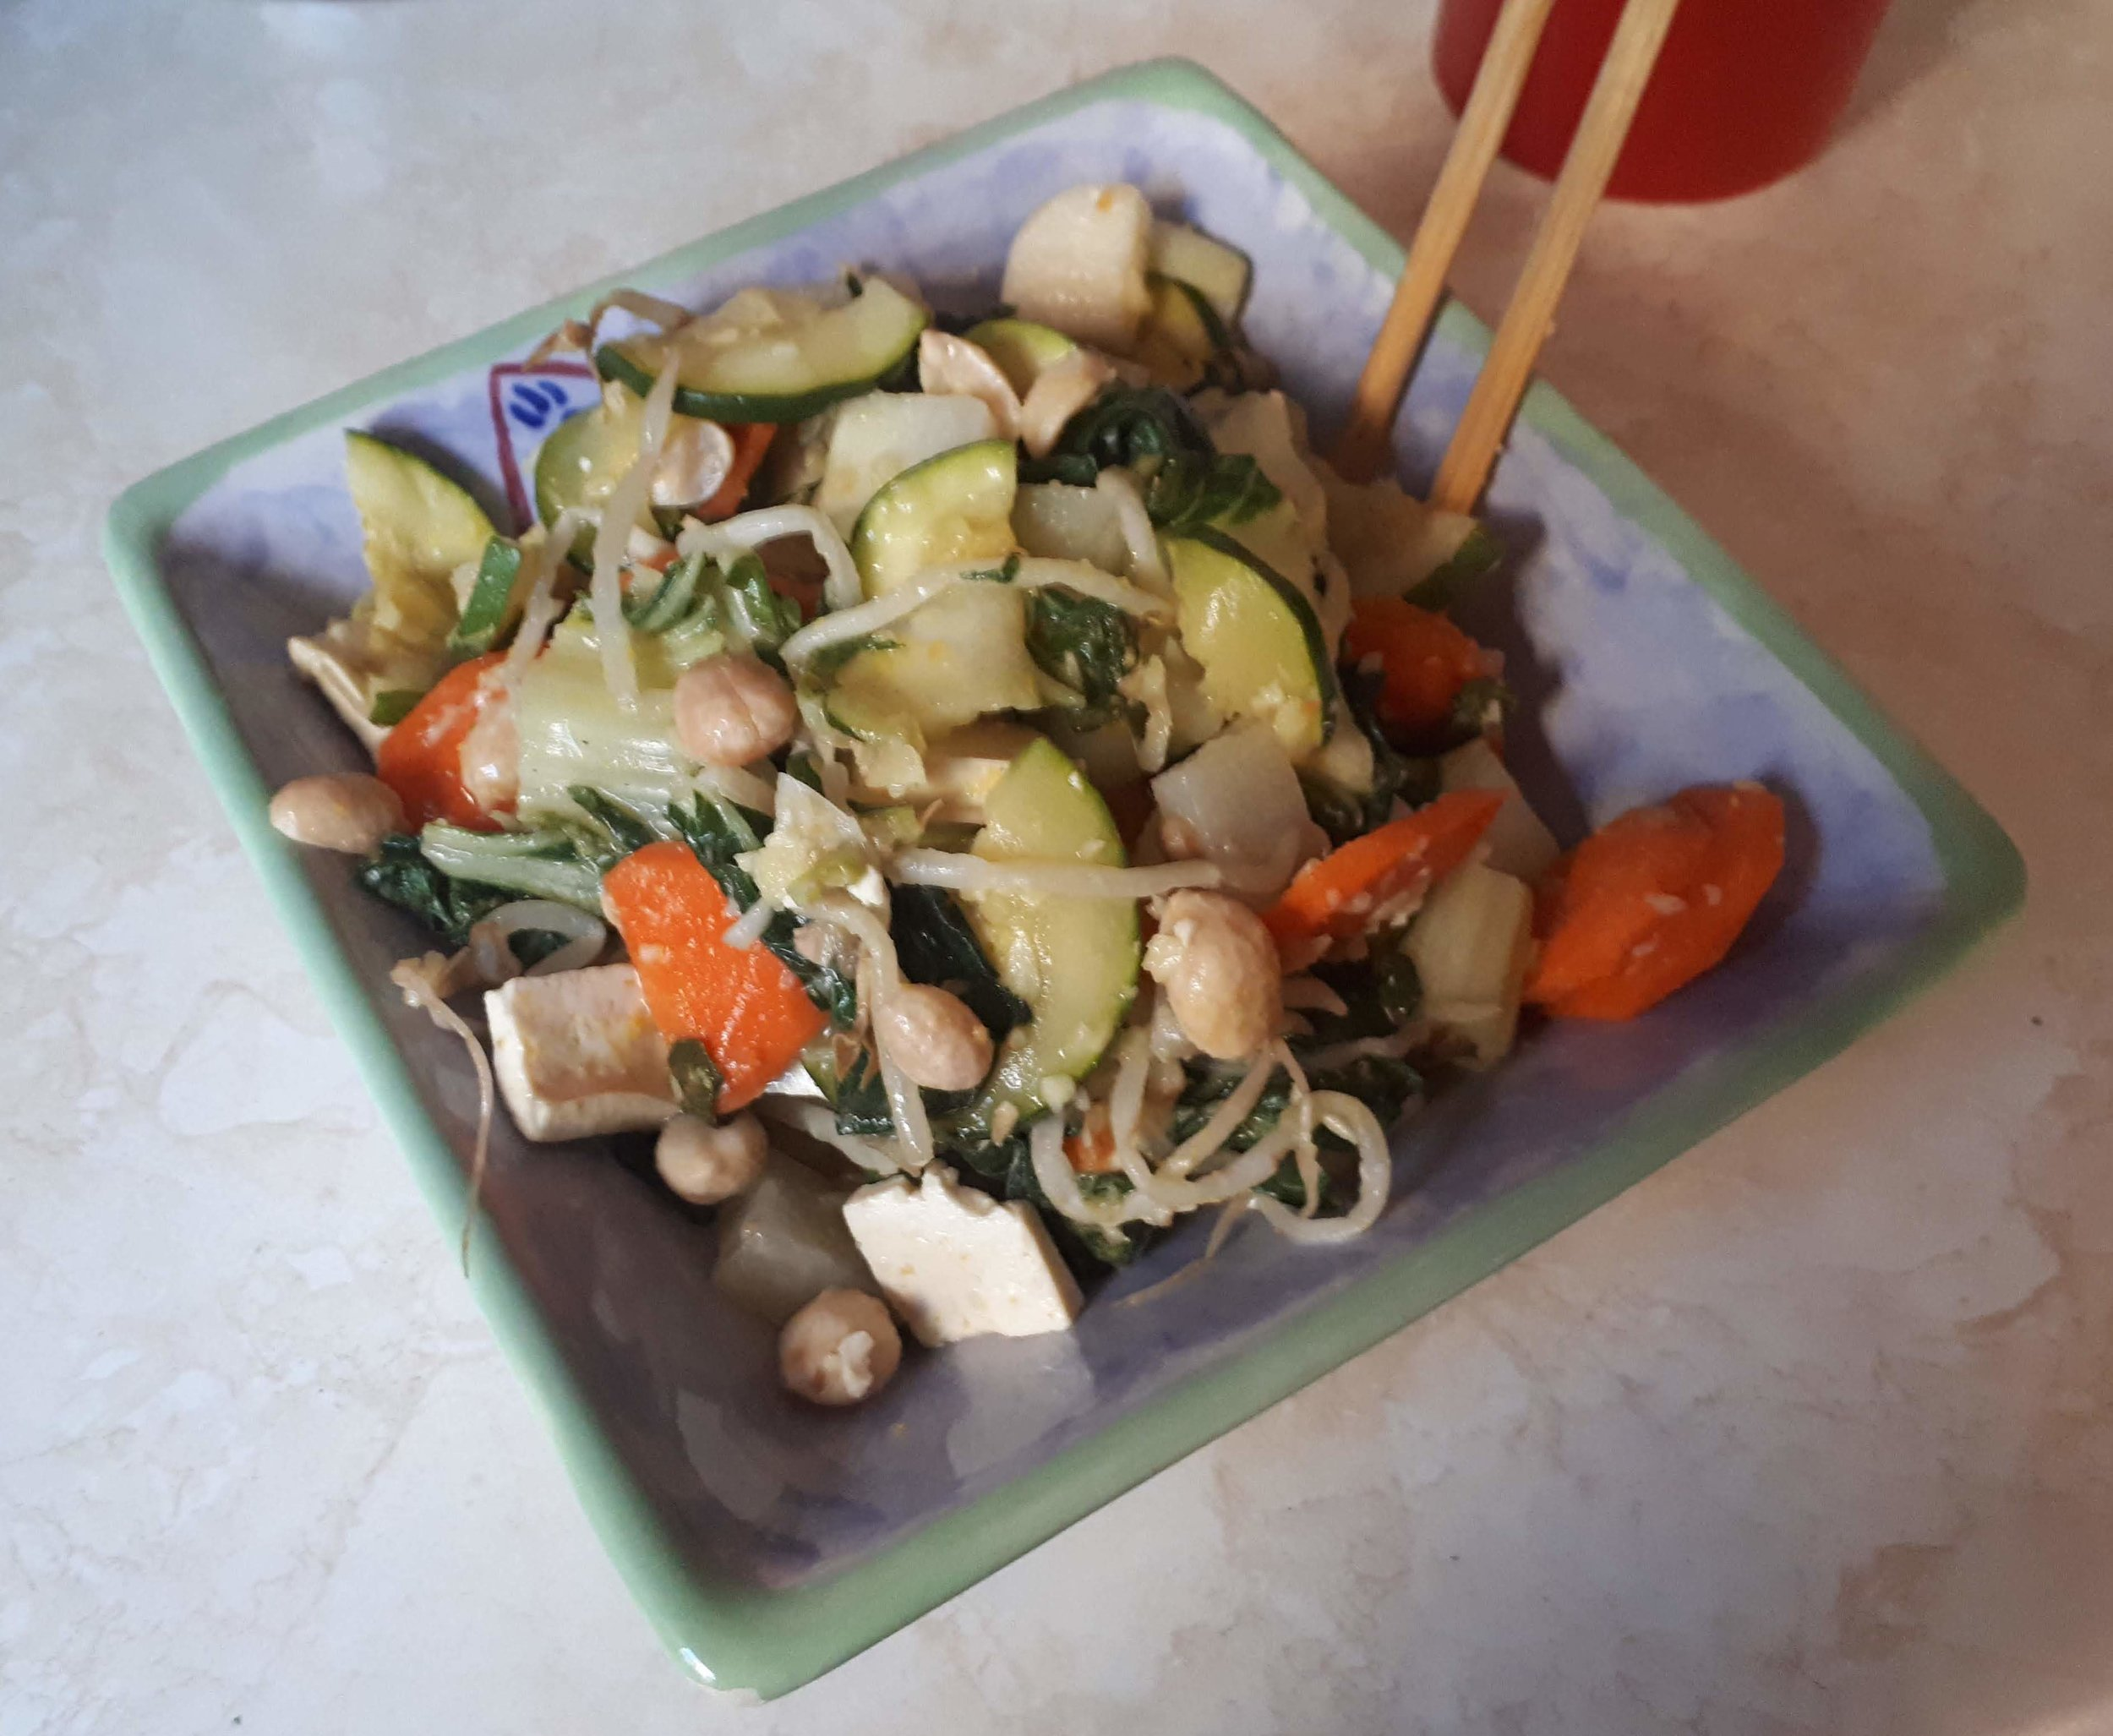 Stir fry. Bok choi, carrots, zucchini, kohlrabi, and bean sprouts with firm tofu and peanuts for protein and fat. Flavoured with ginger, salt, and sesame oil.